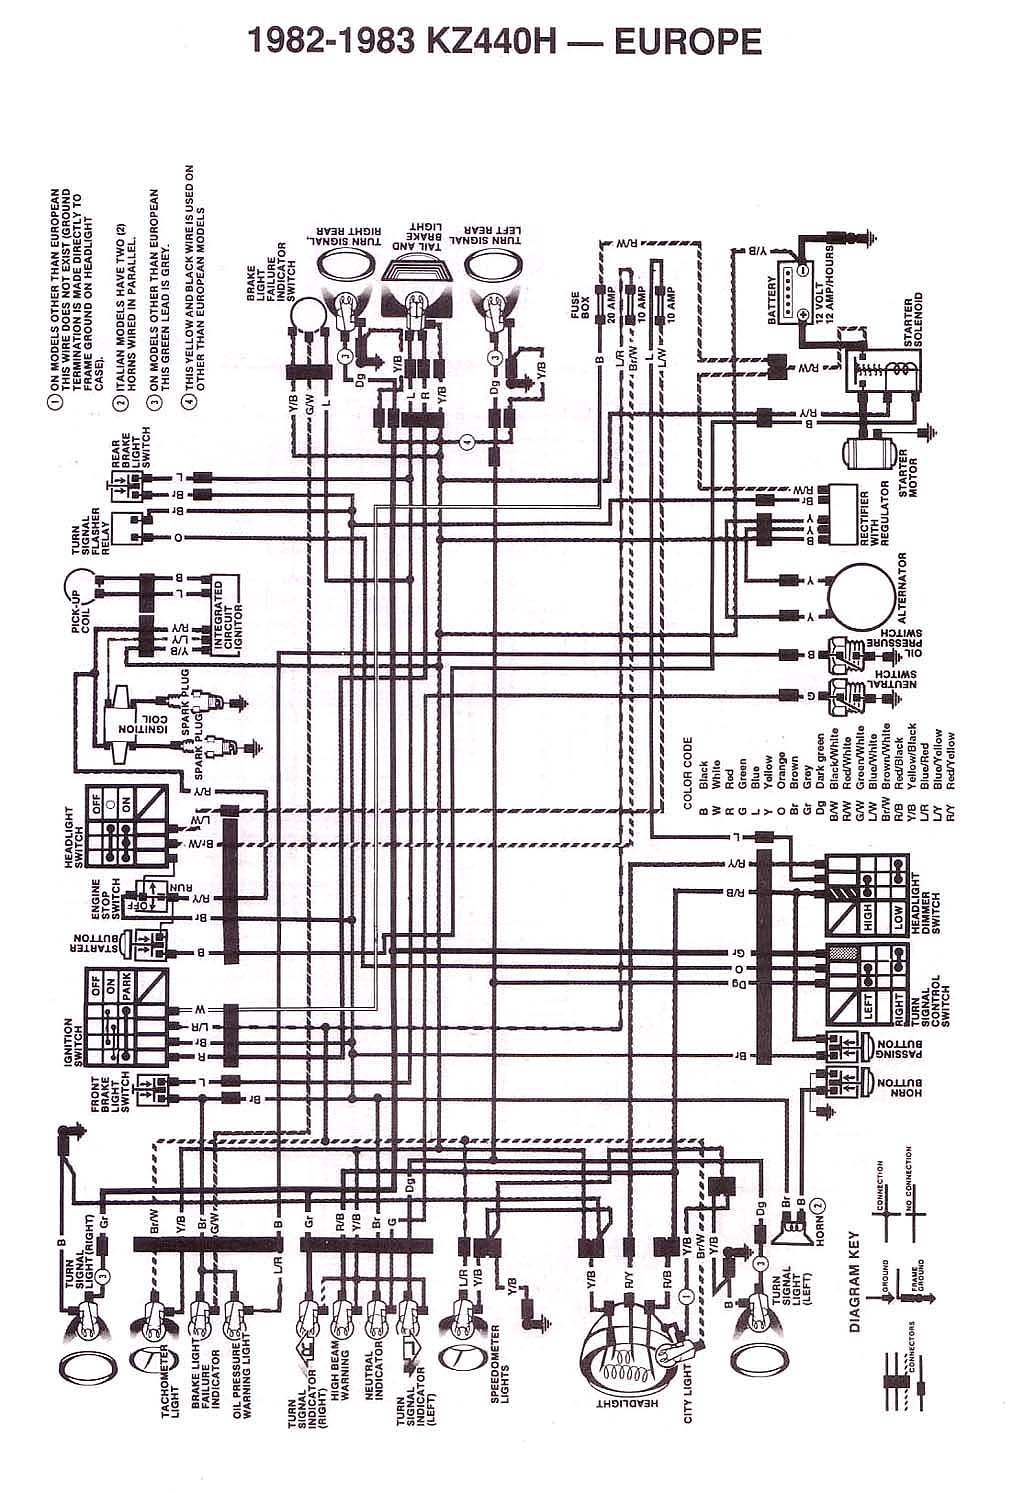 KZ440H Wiring diagram kawa z440 uk motorbike forum 1980 kawasaki 440 ltd wiring diagram at bayanpartner.co